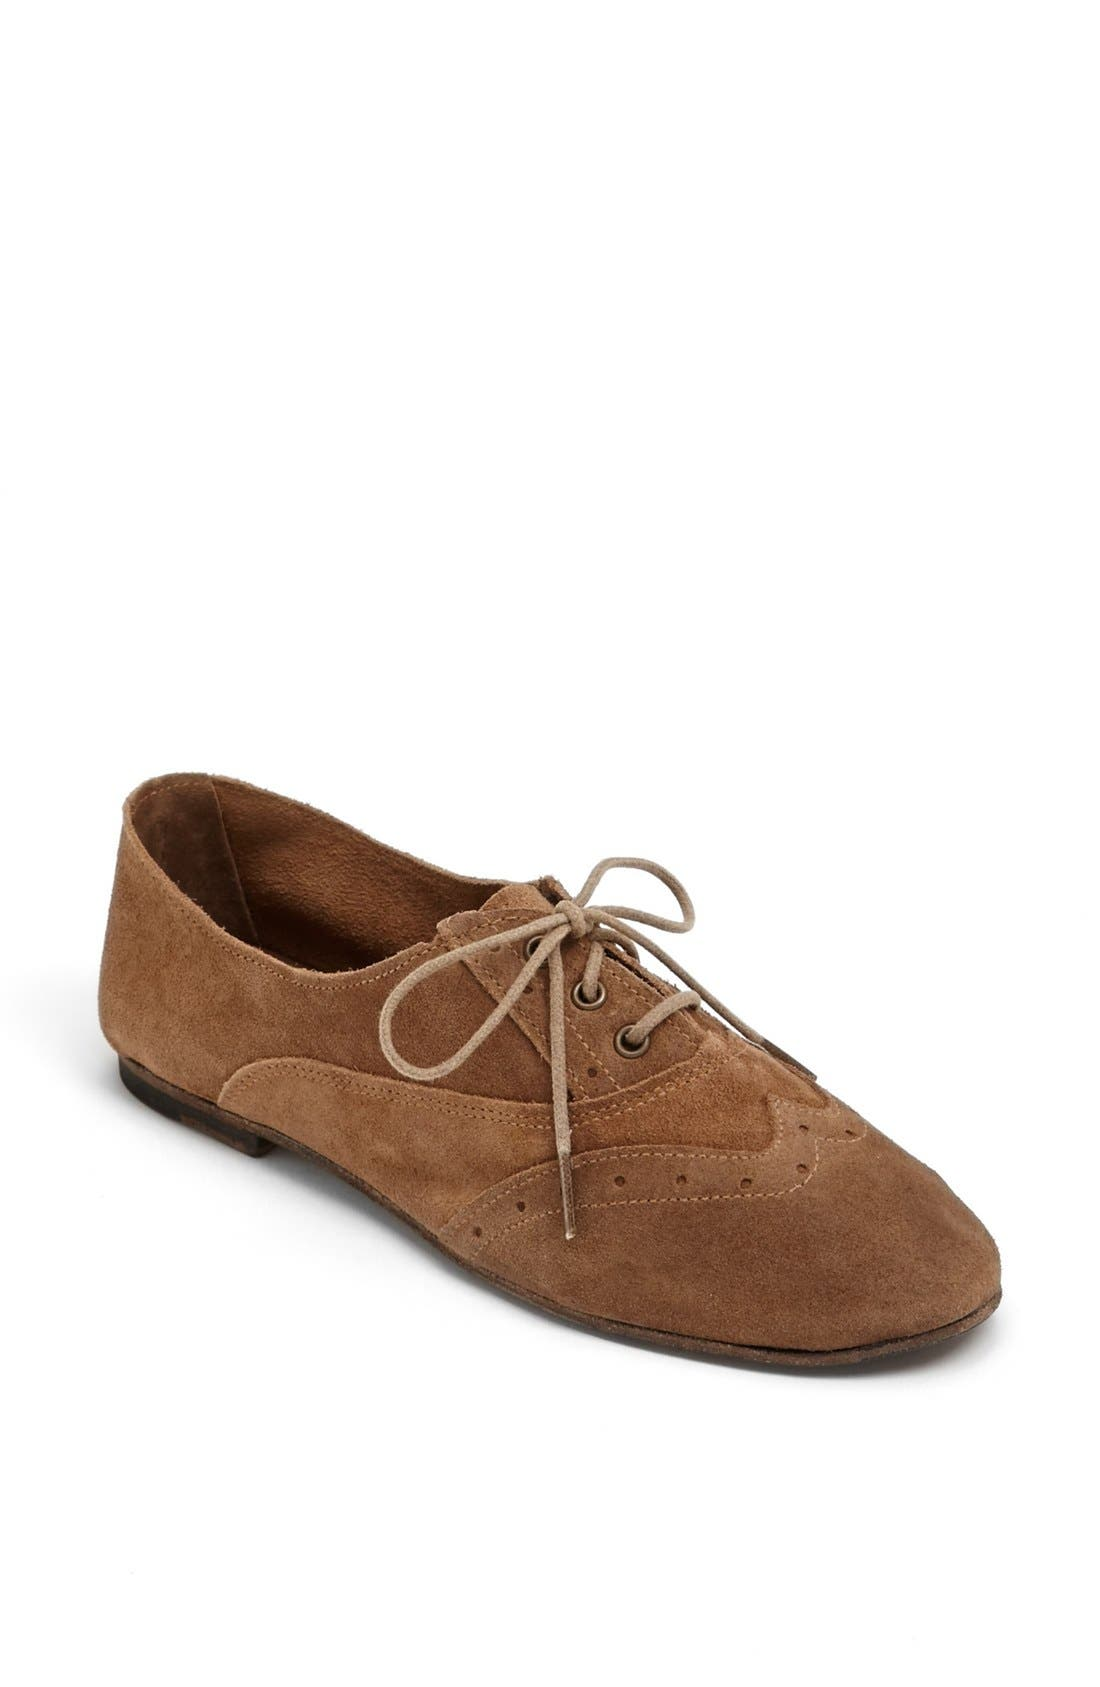 Alternate Image 1 Selected - Vintage Shoe Company 'Aubrey' Flat